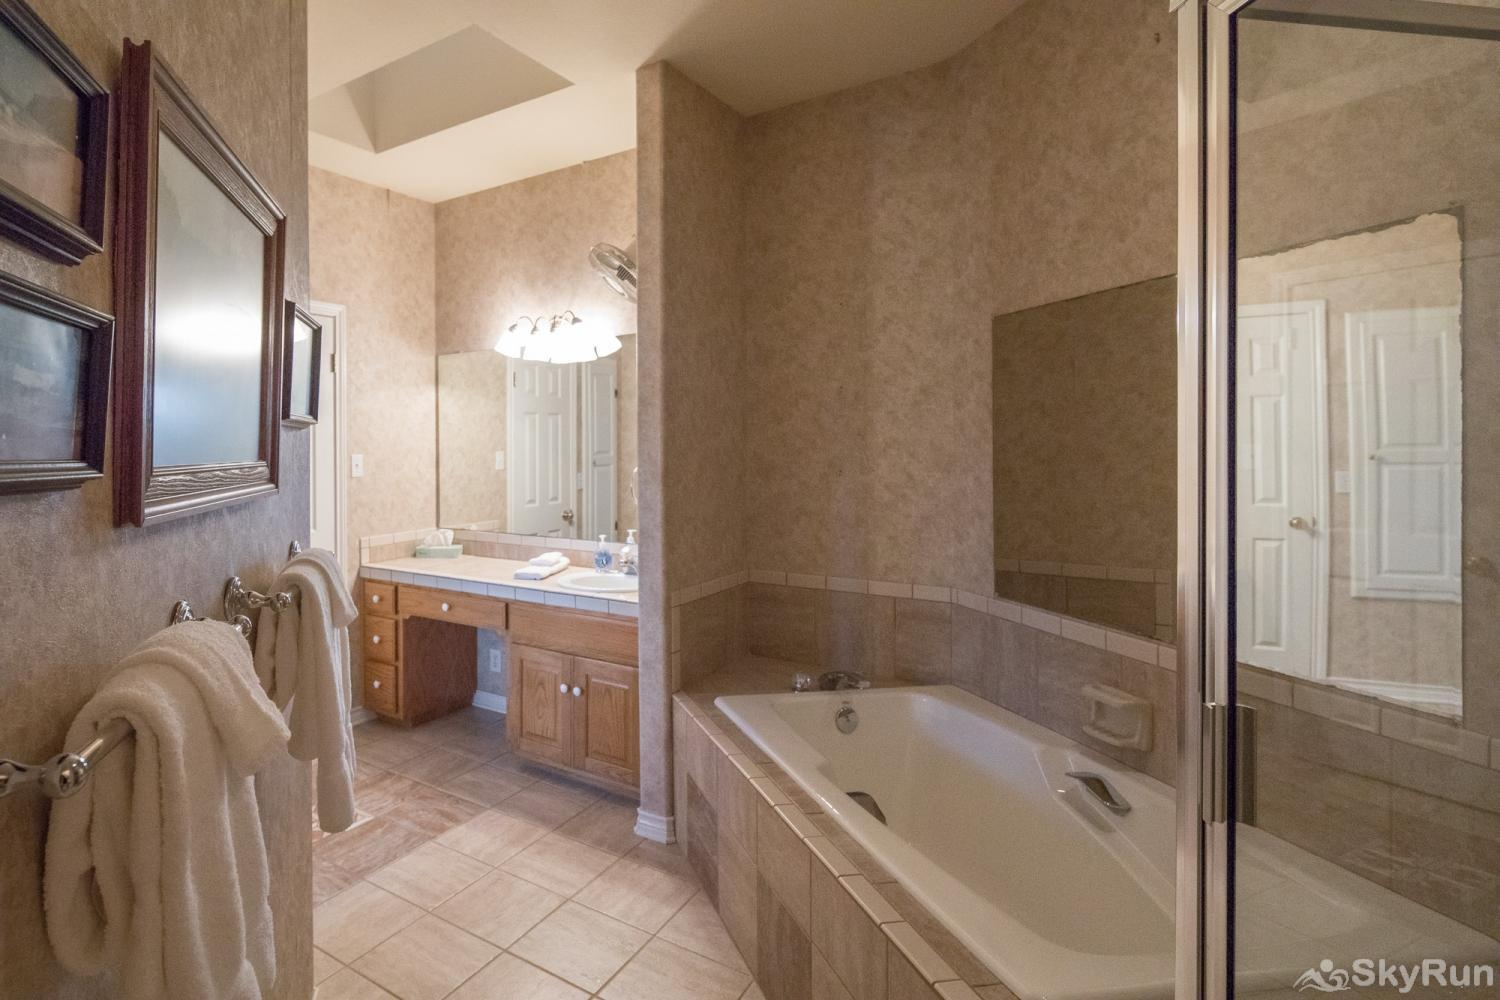 BUCKHAVEN RIDGE Master Bathroom with Large Tub and Separate, Walk-in Shower